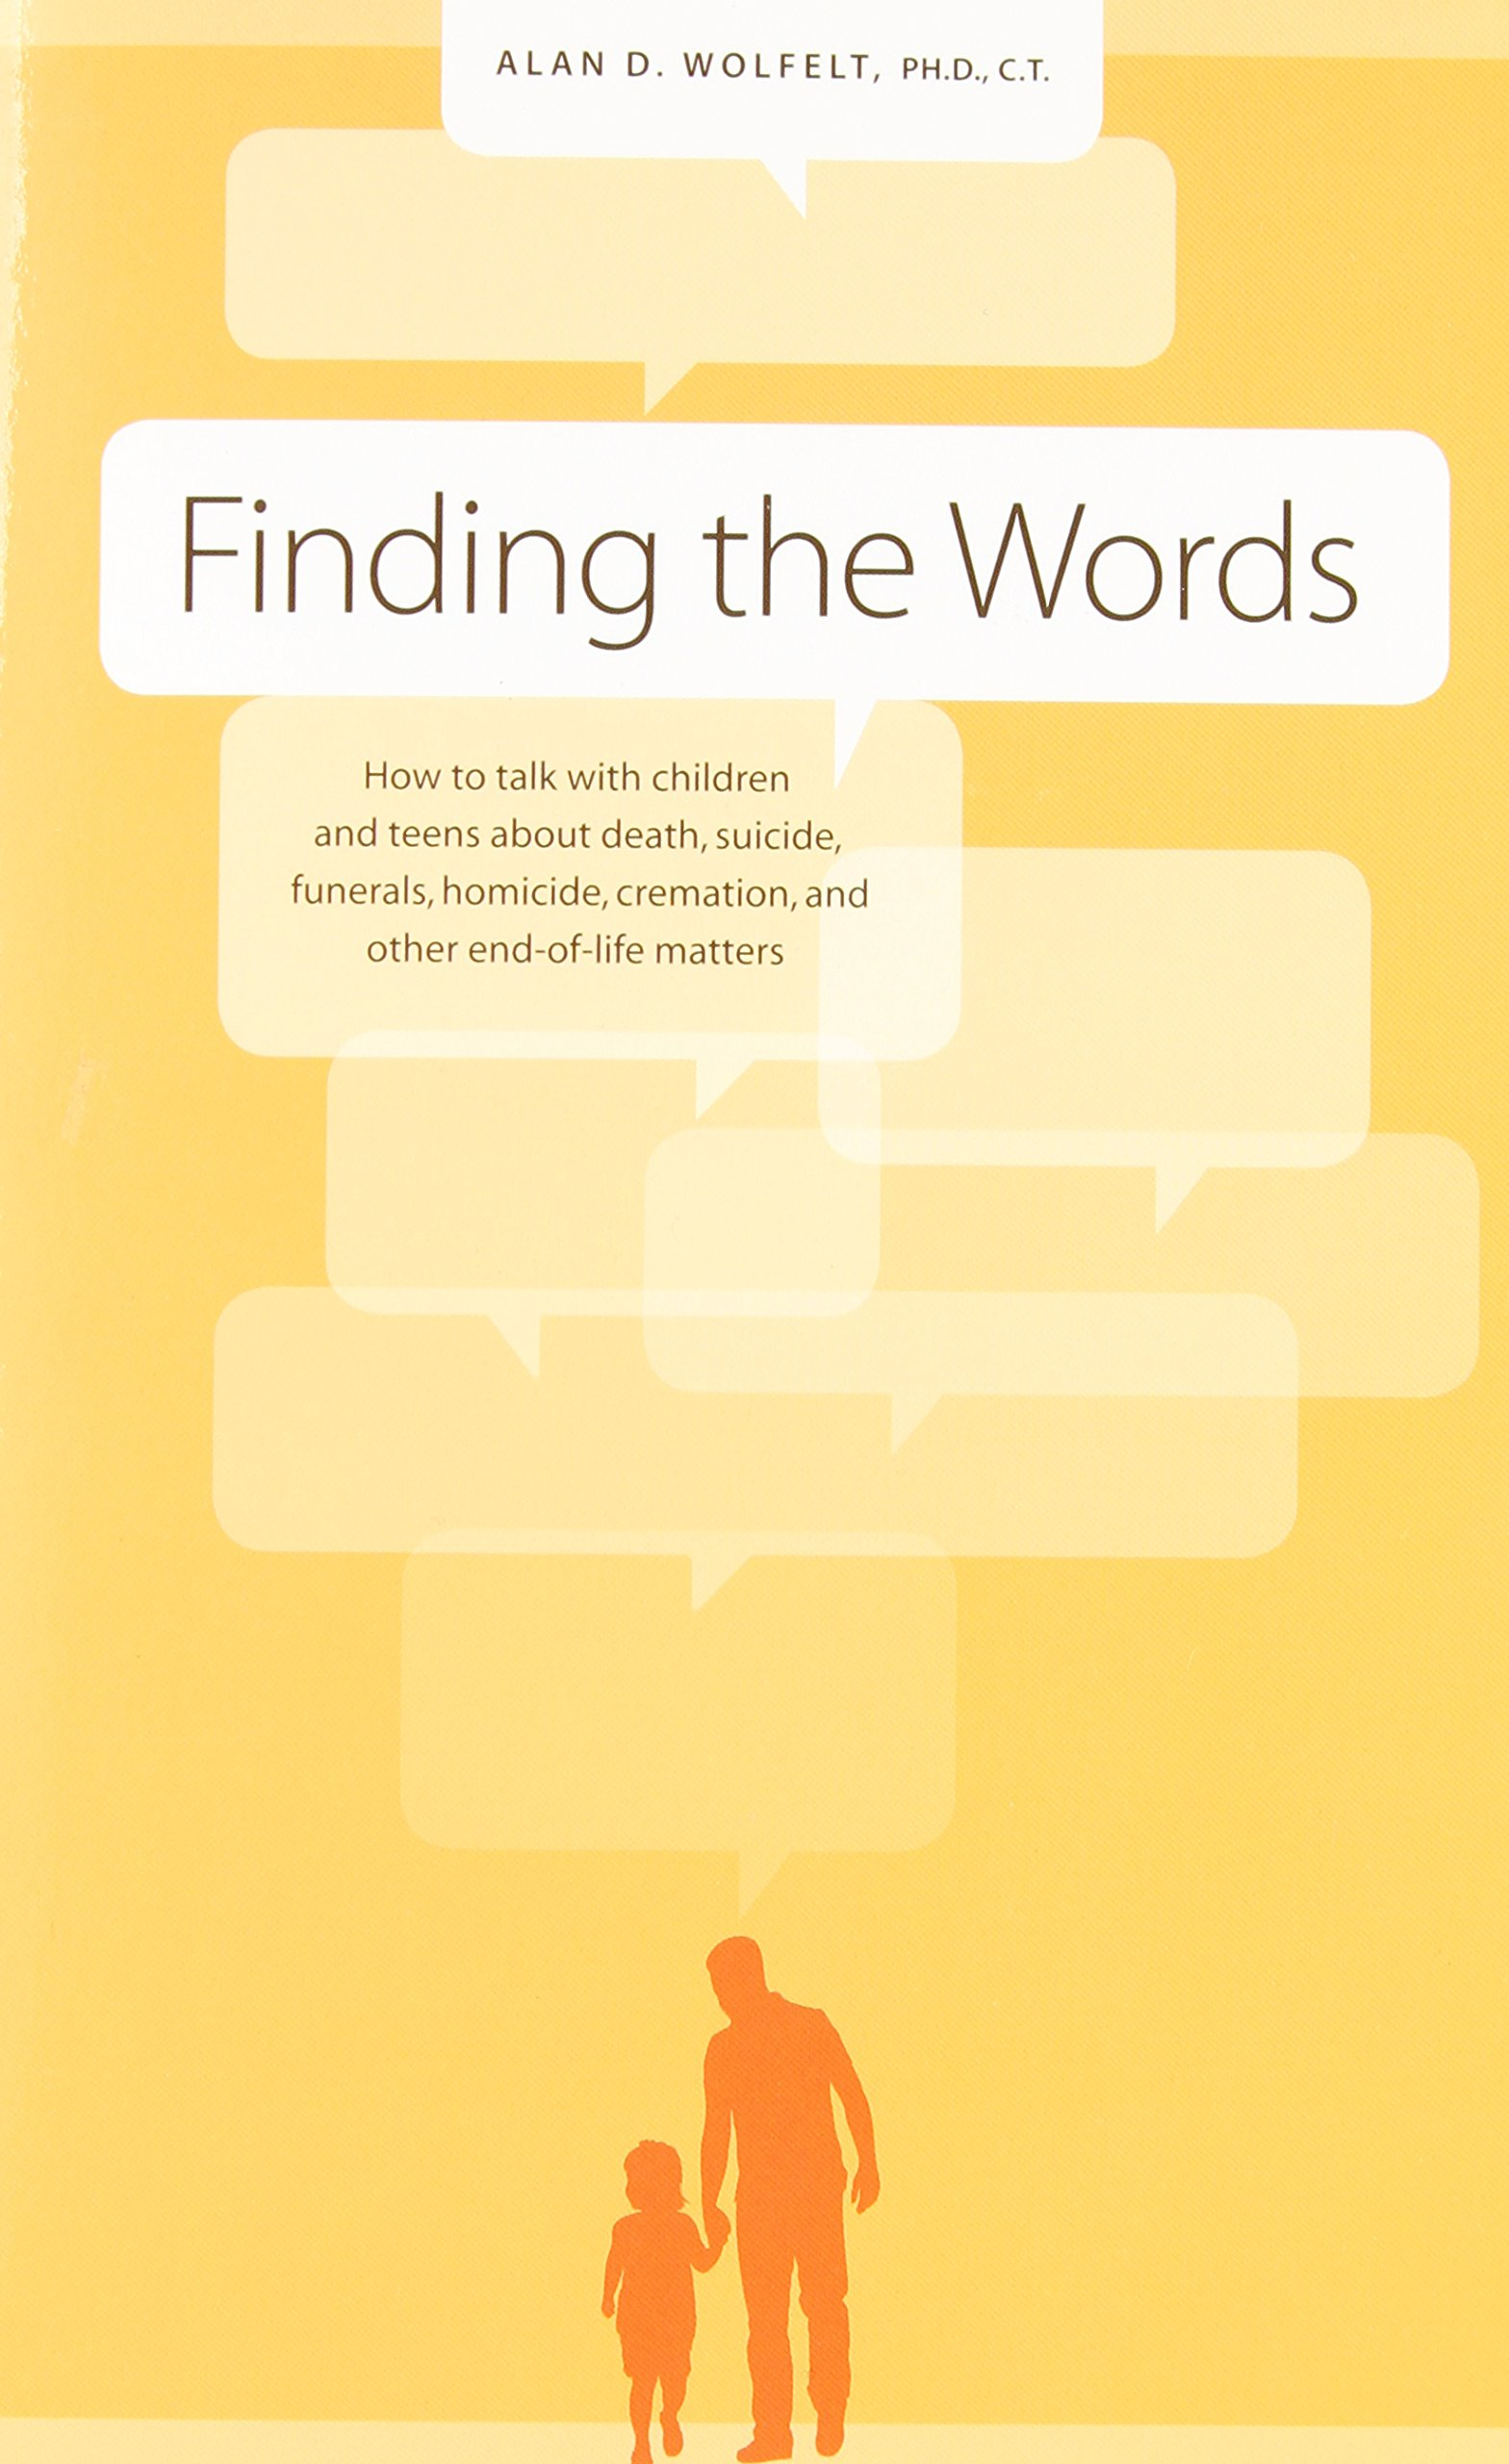 Finding the Words: How to Talk with Children and Teens about Death, Suicide, Homicide, Funerals, Cremation, and other End-of-Life Matters pdf